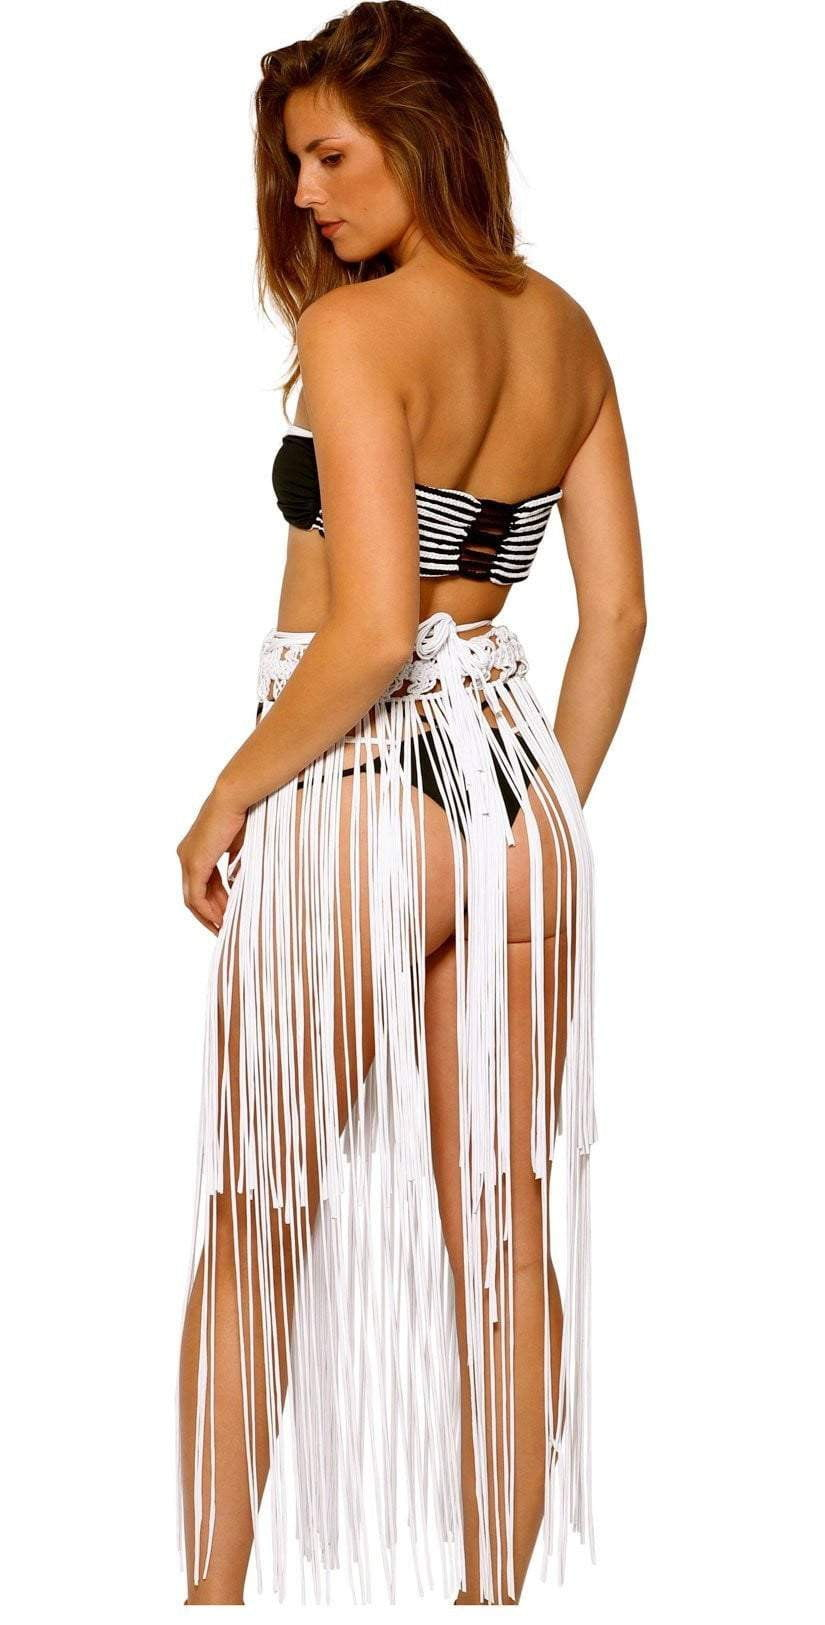 Charmosa Adele Long fringe Skirt AS001  white skirt